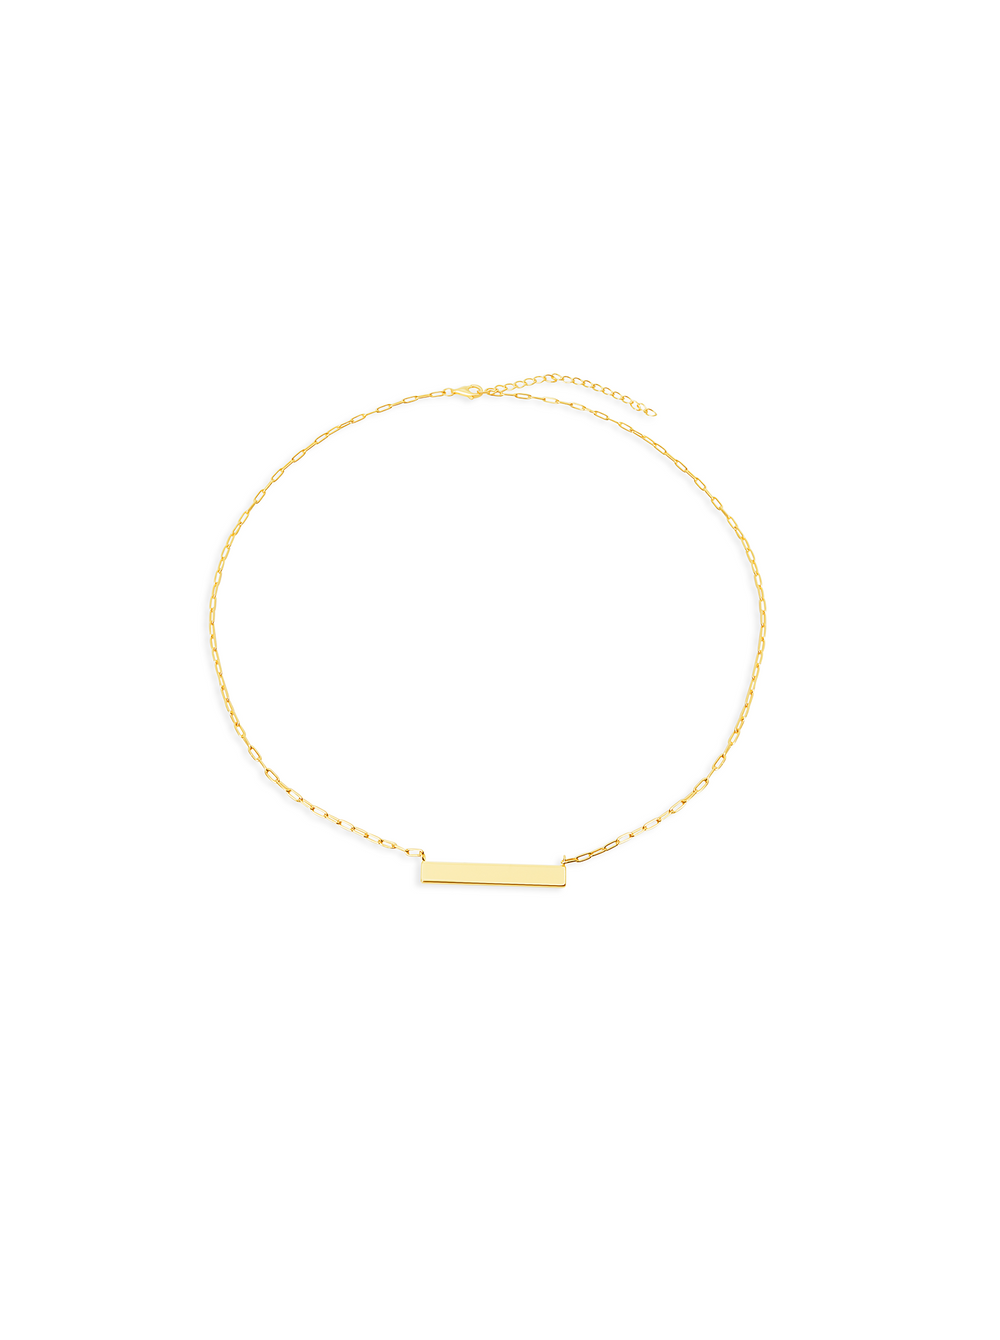 THE REDA LINK BAR NECKLACE